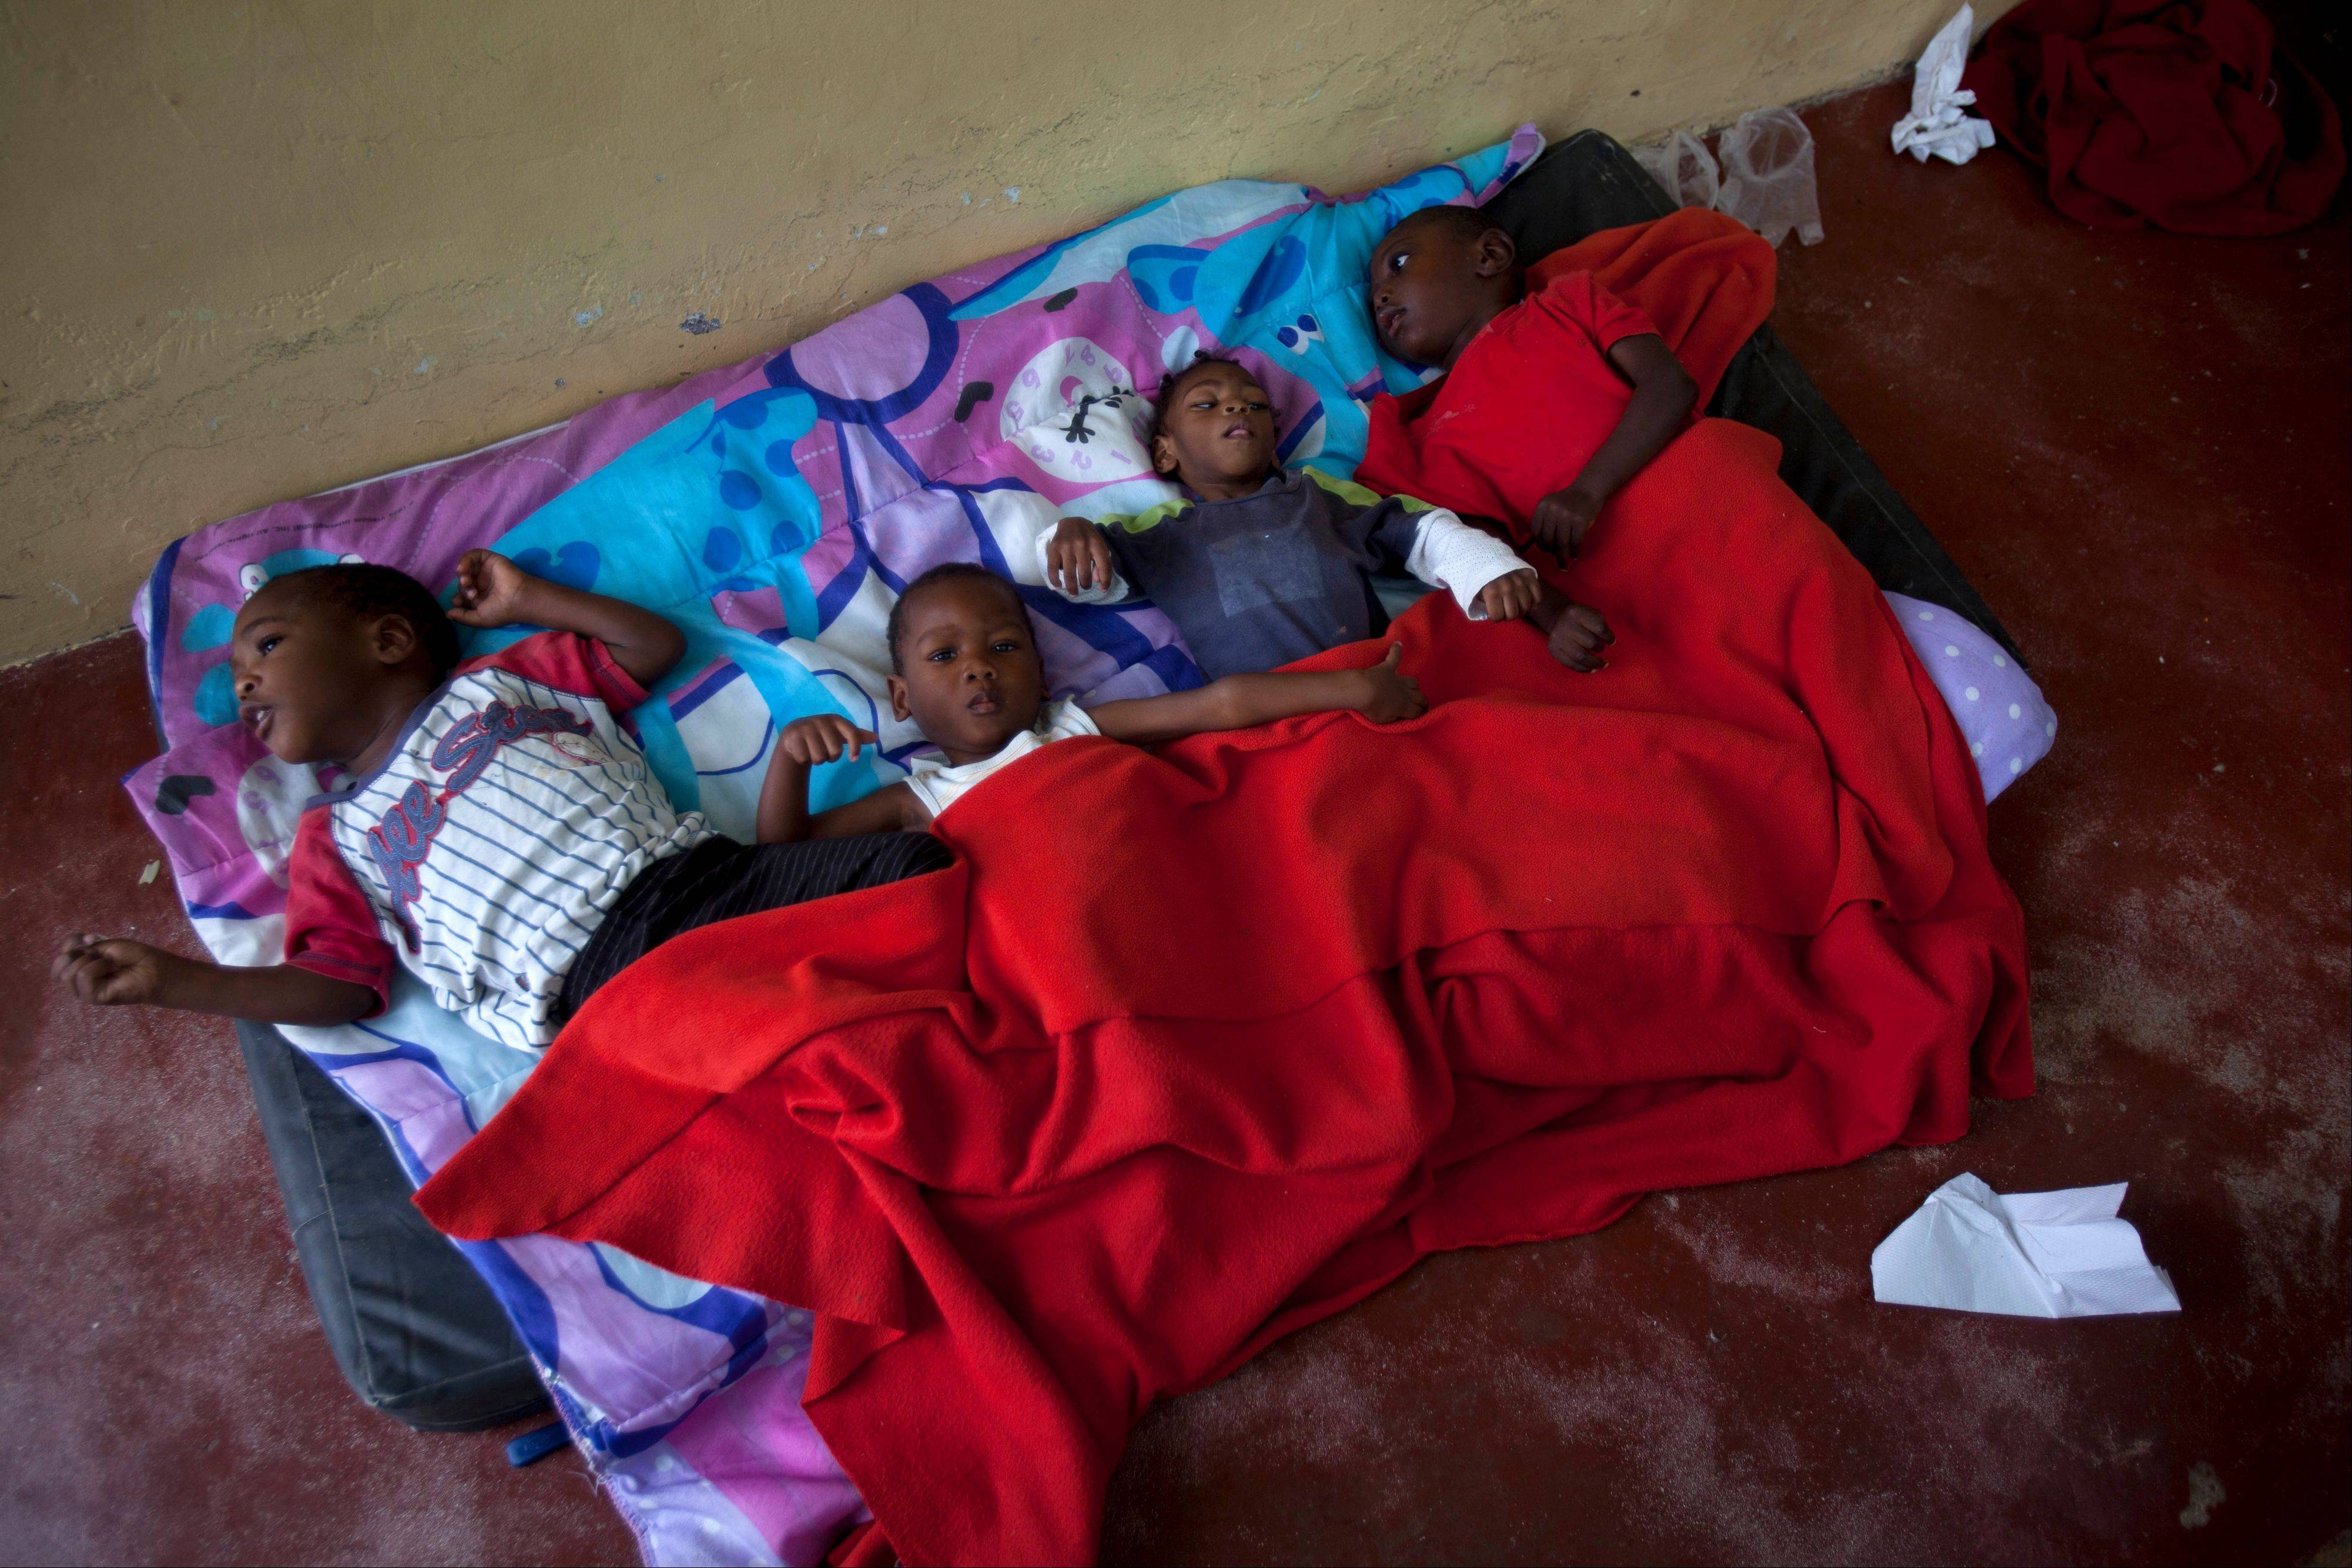 Children lay on a worn mattress placed on the floor of the U.S.-based Church of Bible Understanding orphanage in Kenscoff, Haiti. The orphanage is run by a Christian missionary group funded by the Olde Good Things antique store on Manhattan�s Upper West Side.